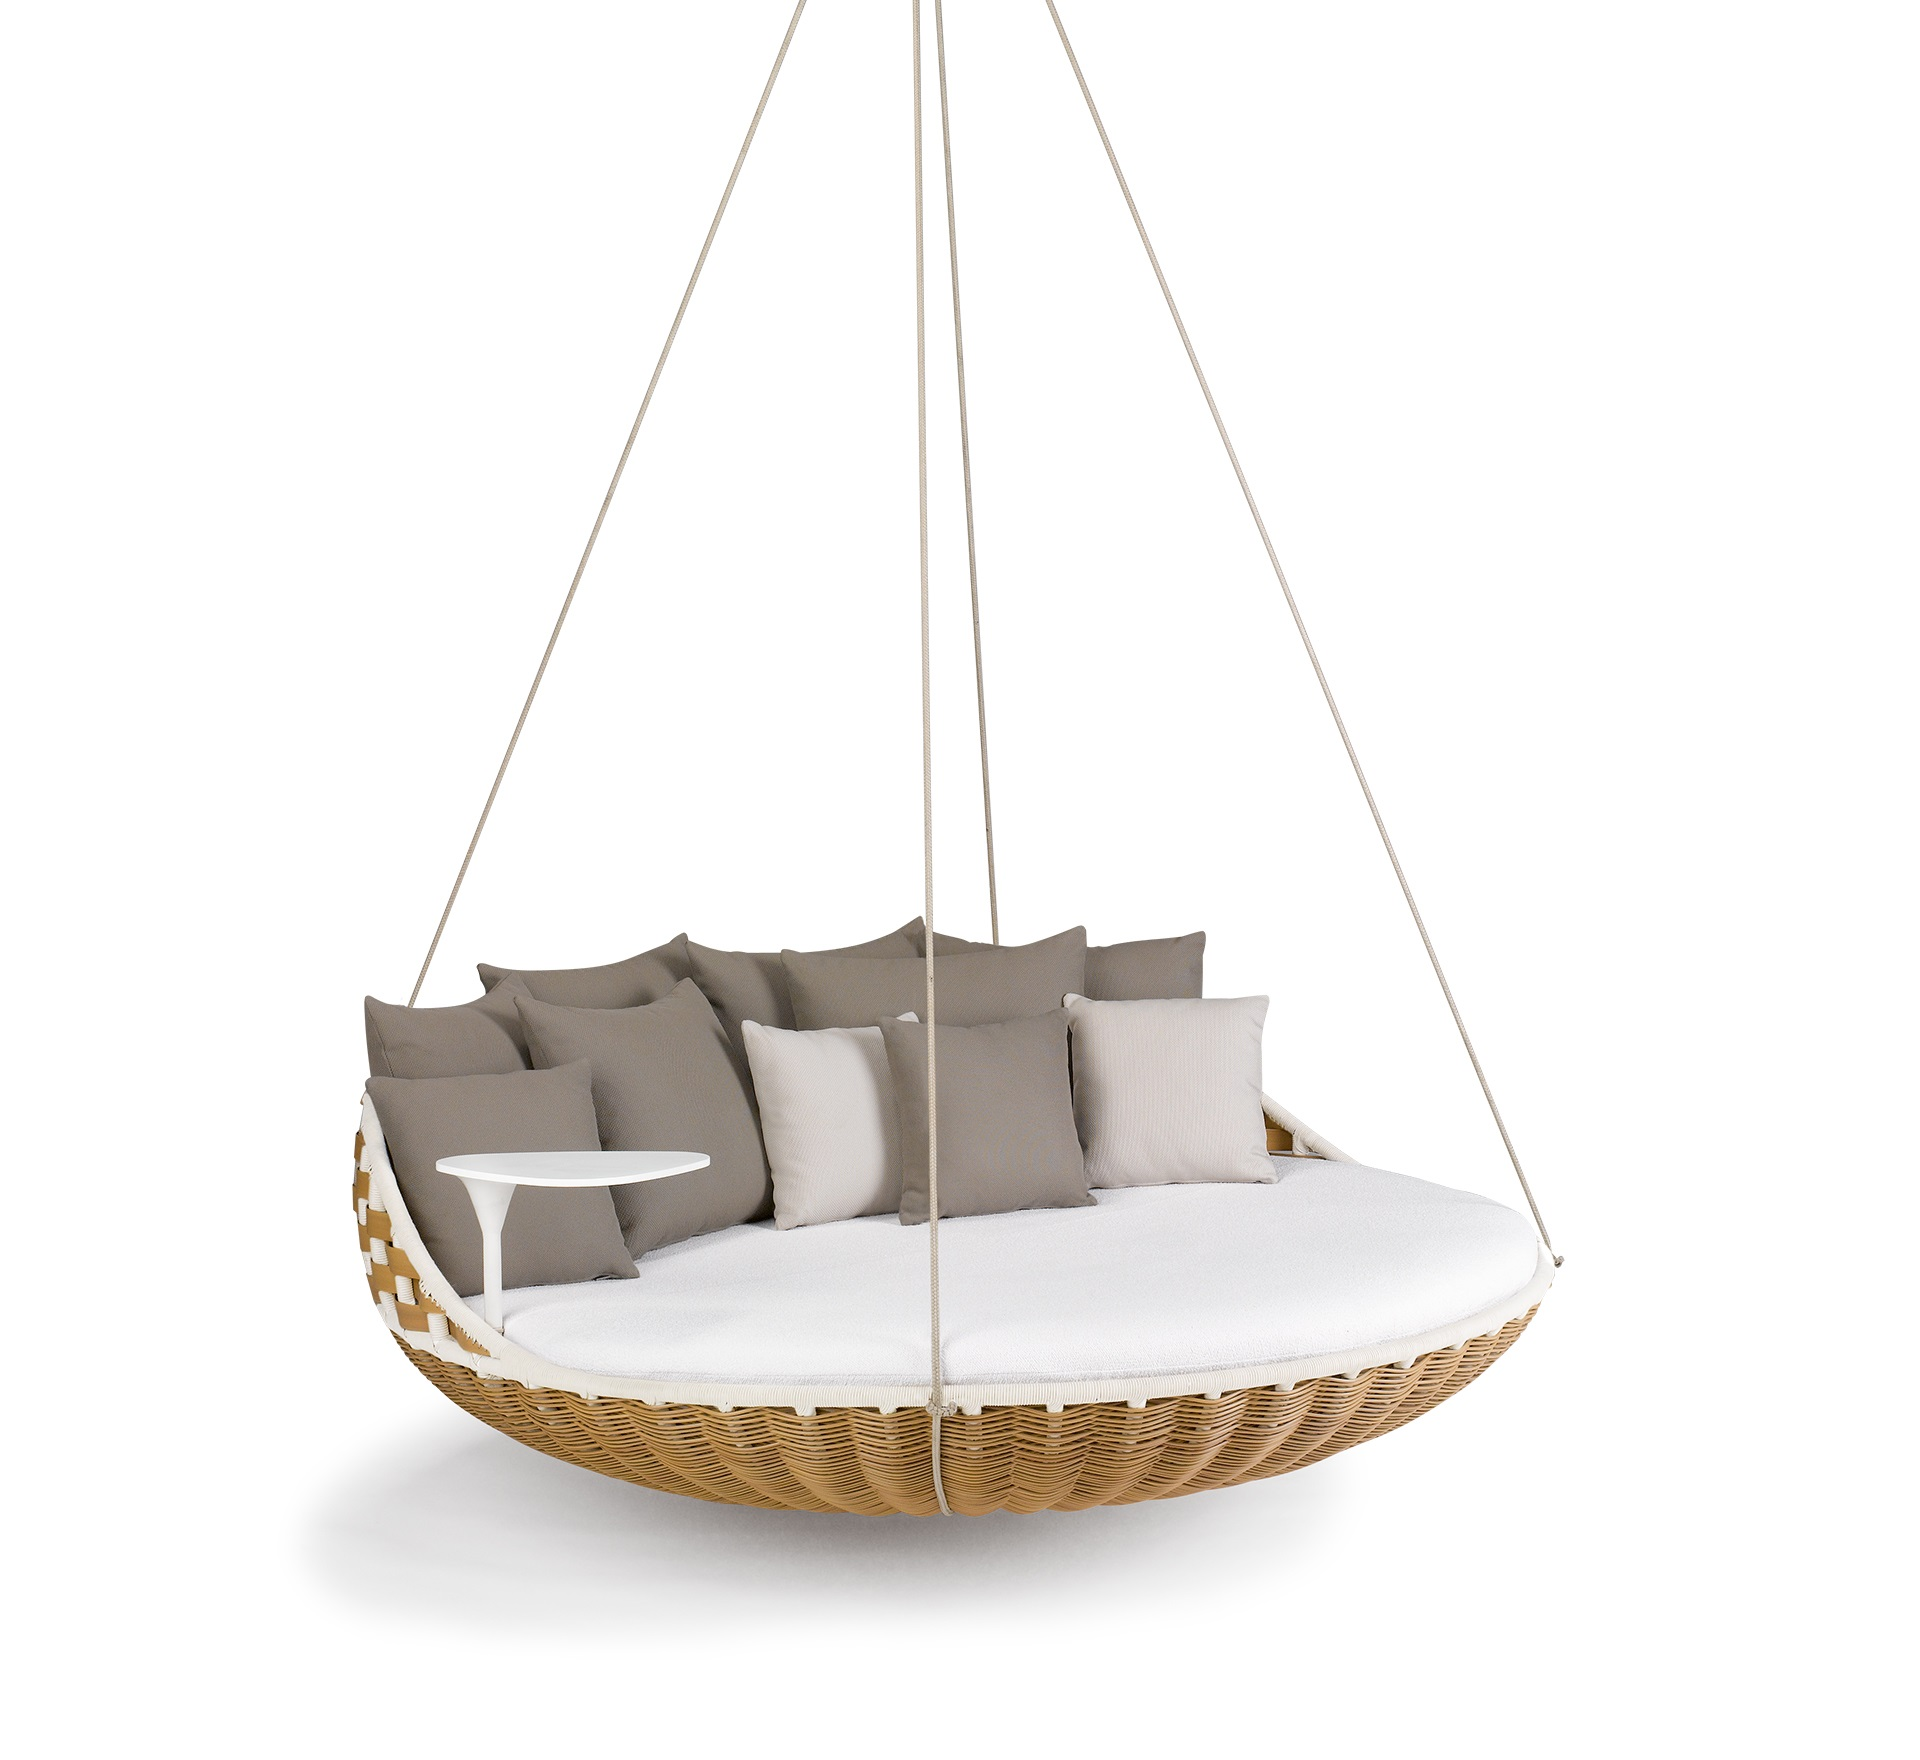 Outdoor Furniture Design Craftsmanship Treasures to Color Your Summer - Dedon - Swingrest - Hanging Lounger outdoor furniture Outdoor Furniture Design: Craftsmanship Treasures to Color Your Summer Outdoor Furniture Design Craftsmanship Treasures to Color Your Summer Dedon Swingrest Hanging Lounger